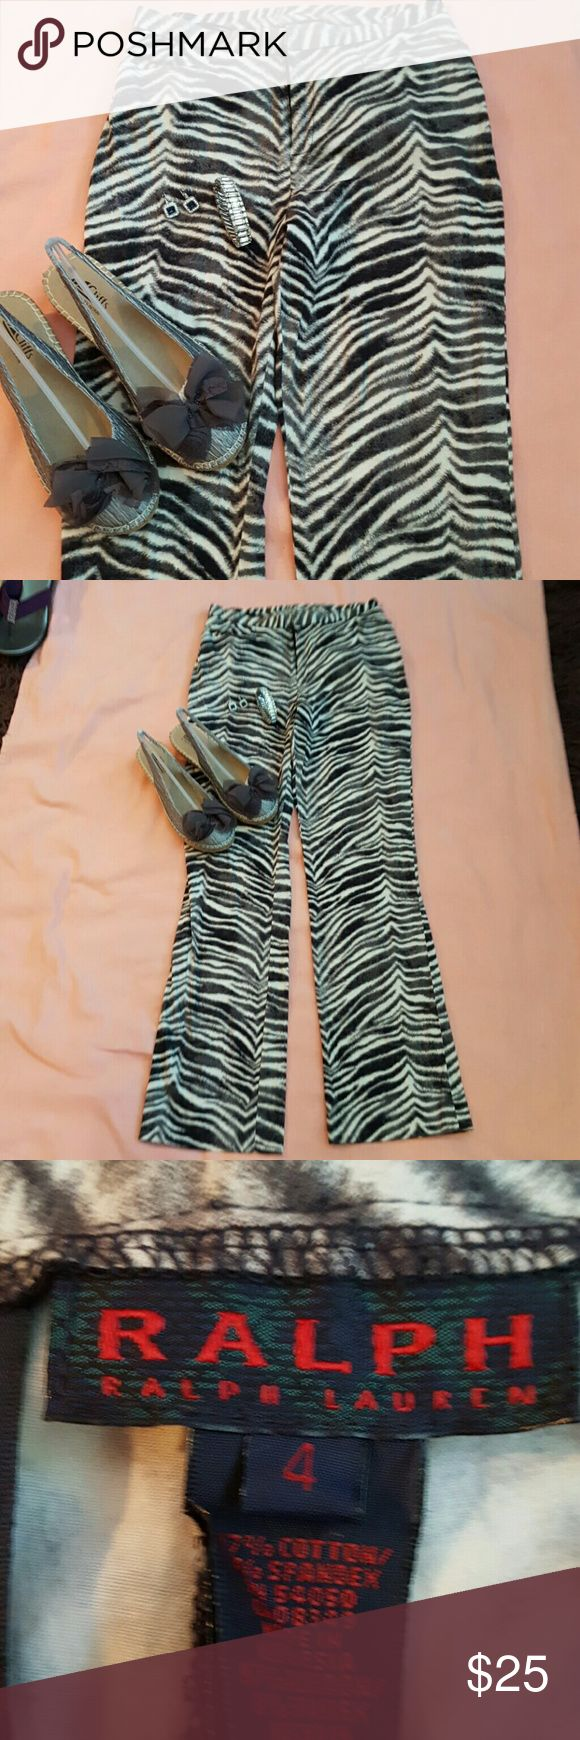 WILD THING ANIMAL PRINT / RALPH LAURAN Zebra/ Brave ,SOFT , BEAUTIFUL LAST LONG TIME/ SOME HIGH HEELS NICE BLOUSE OUT ON THE TOWN Ralph Lauren Pants